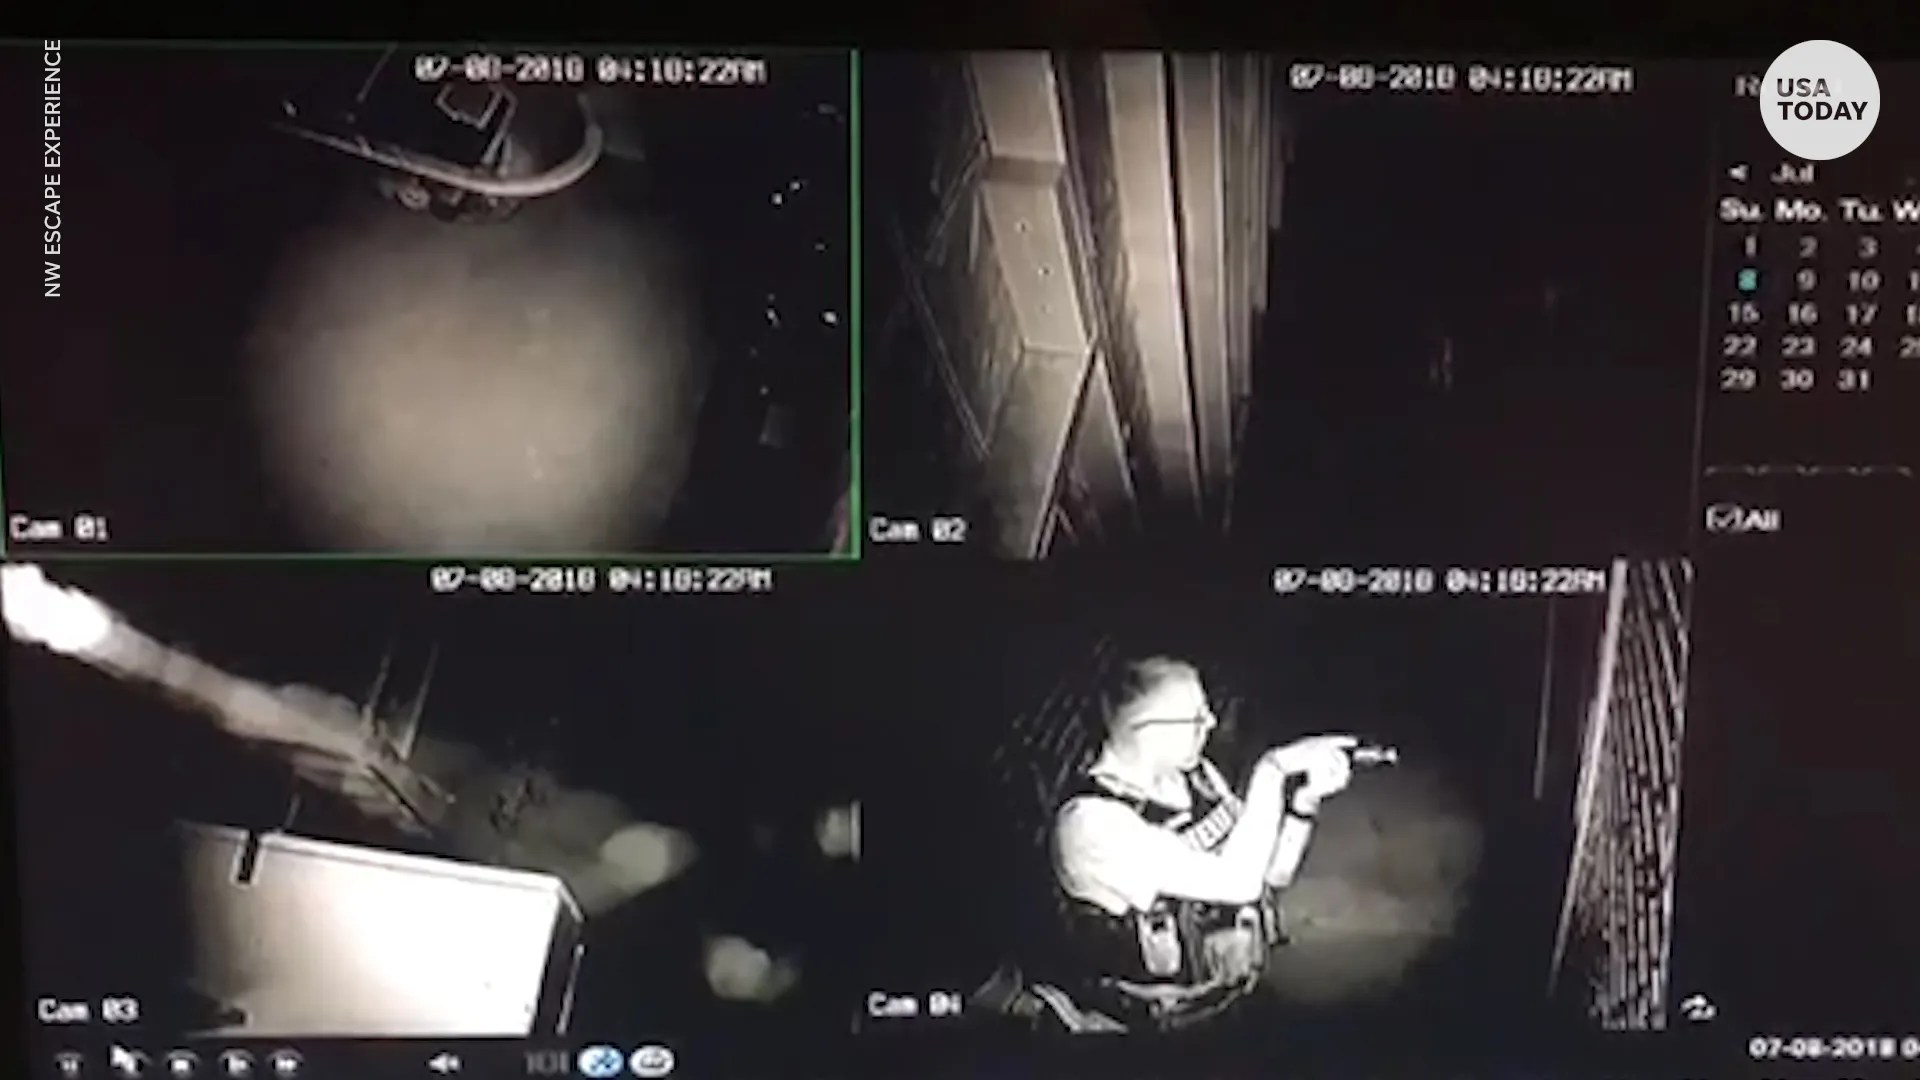 Burglar trapped in escape room calls 911